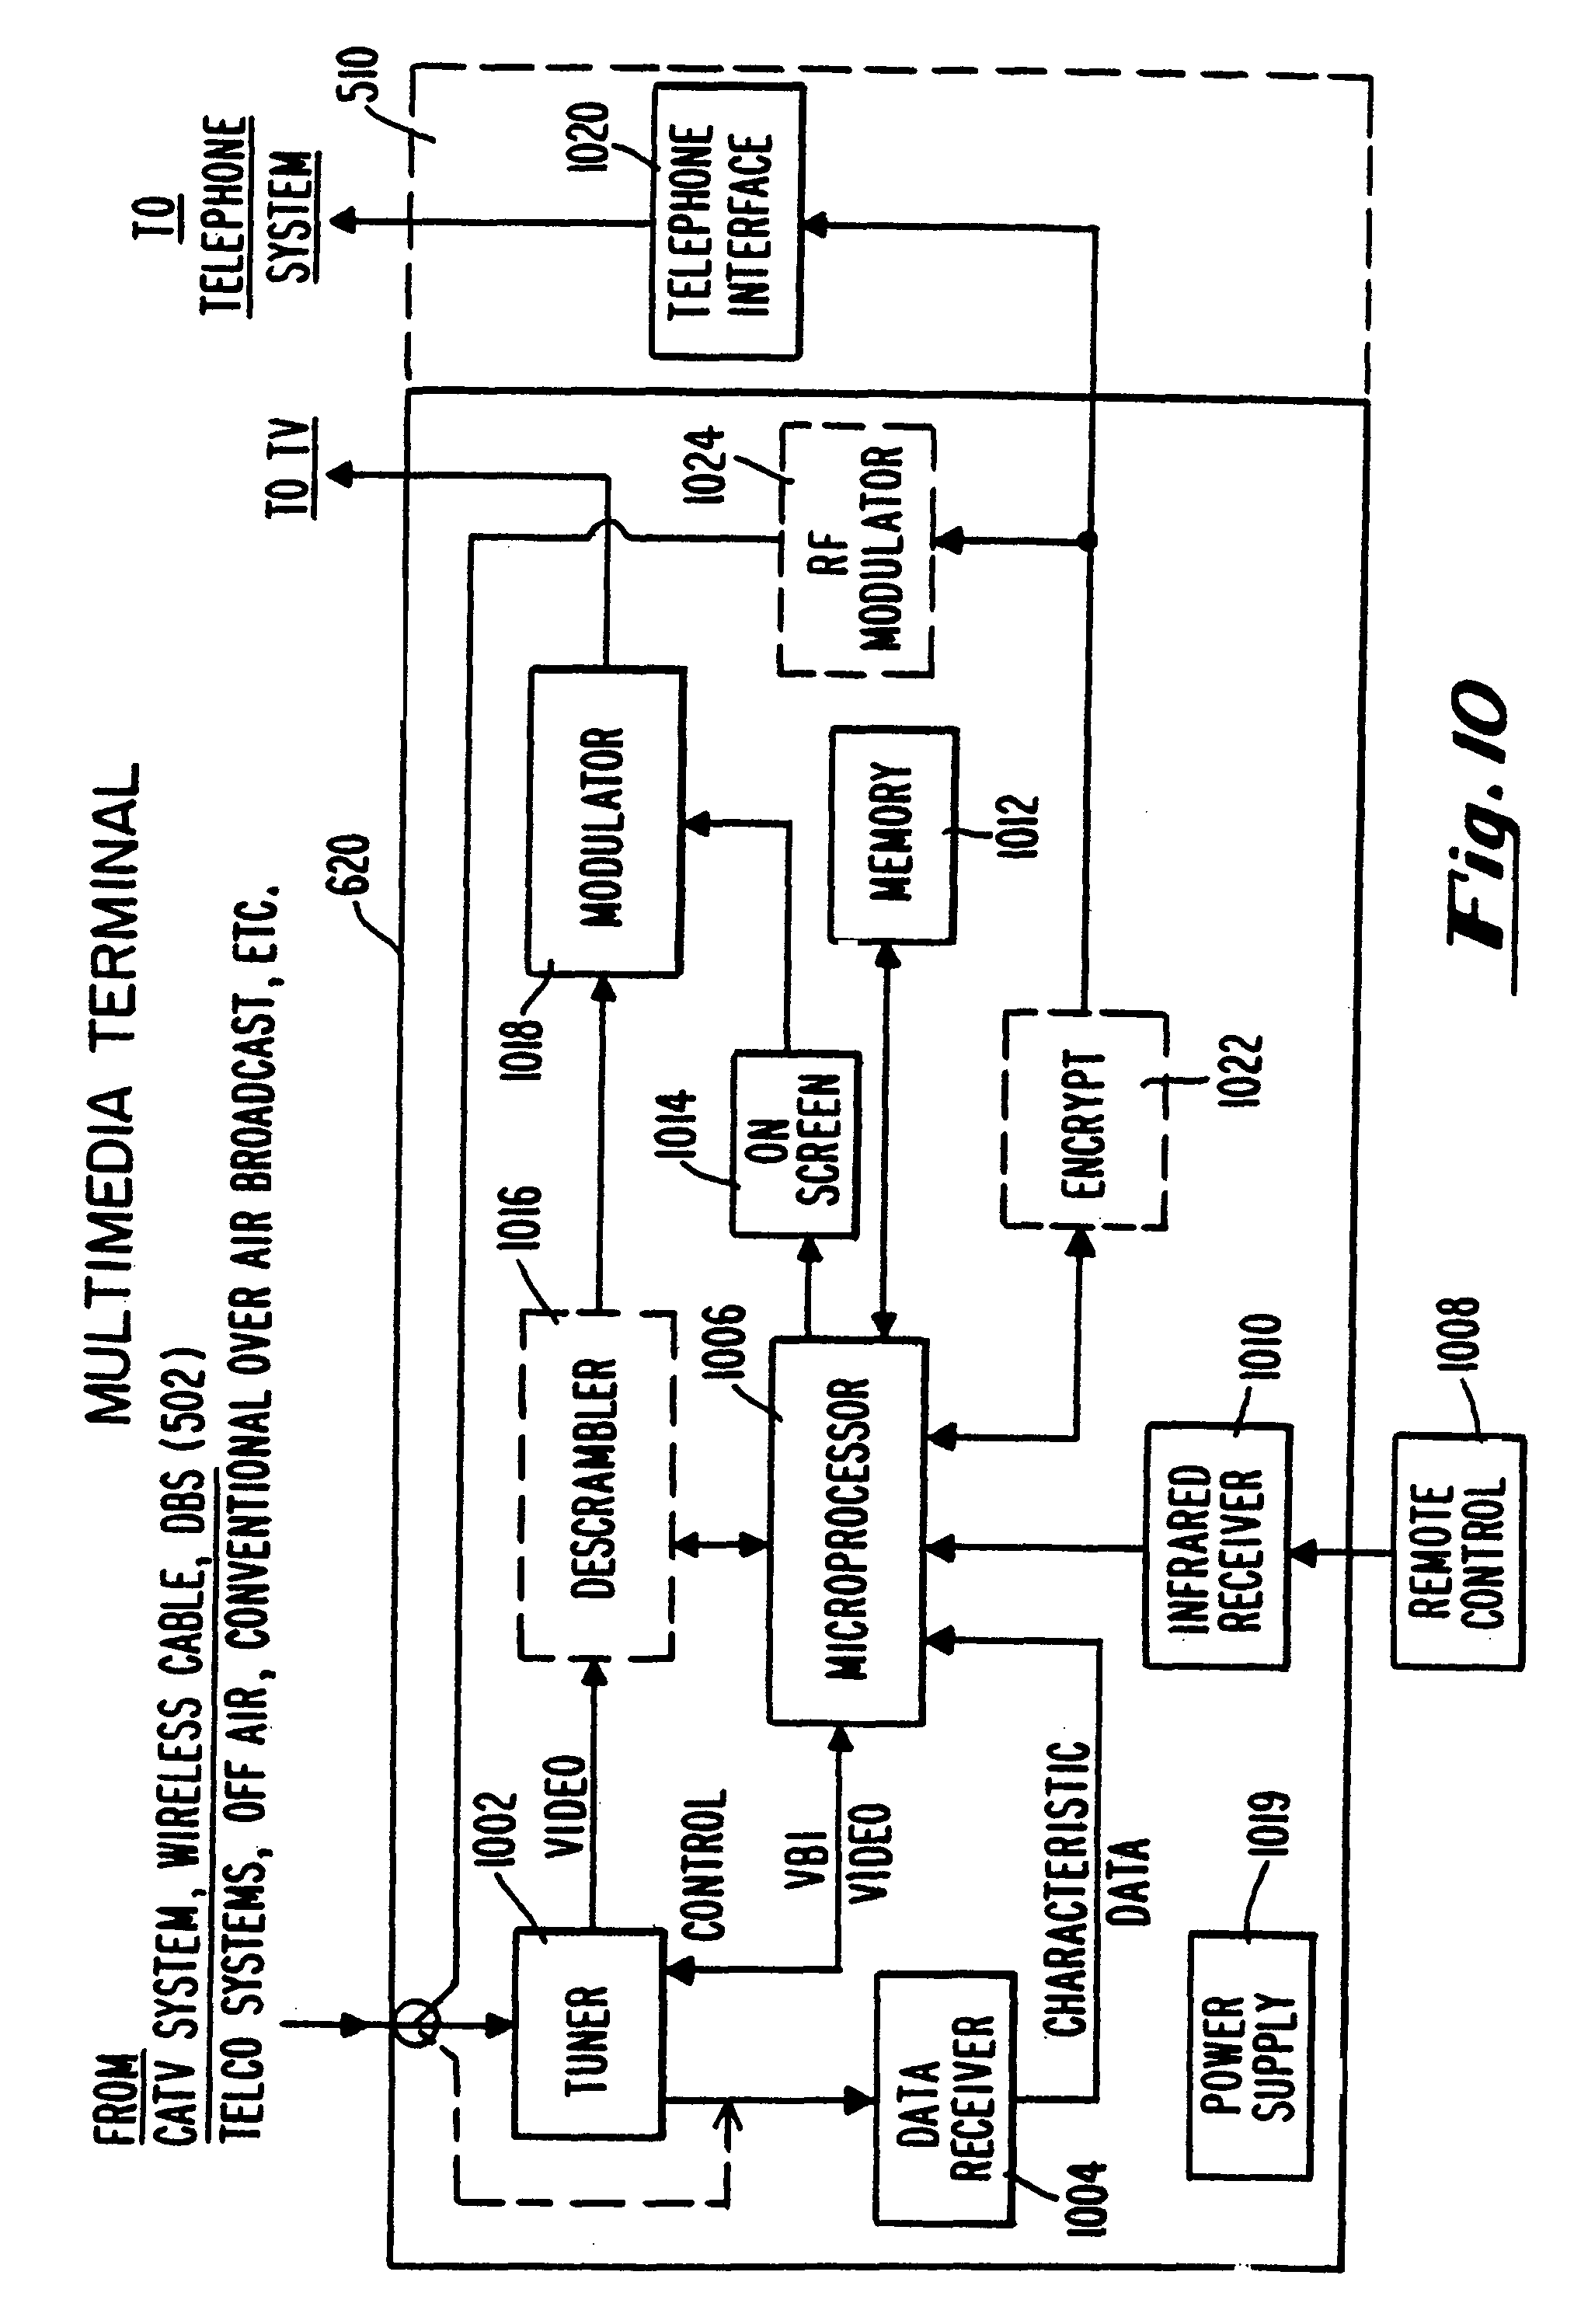 Us8056100b2 System And Method For Providing Access To Data Using Haas Encoder Wiring Diagram Customer Profiles Google Patents